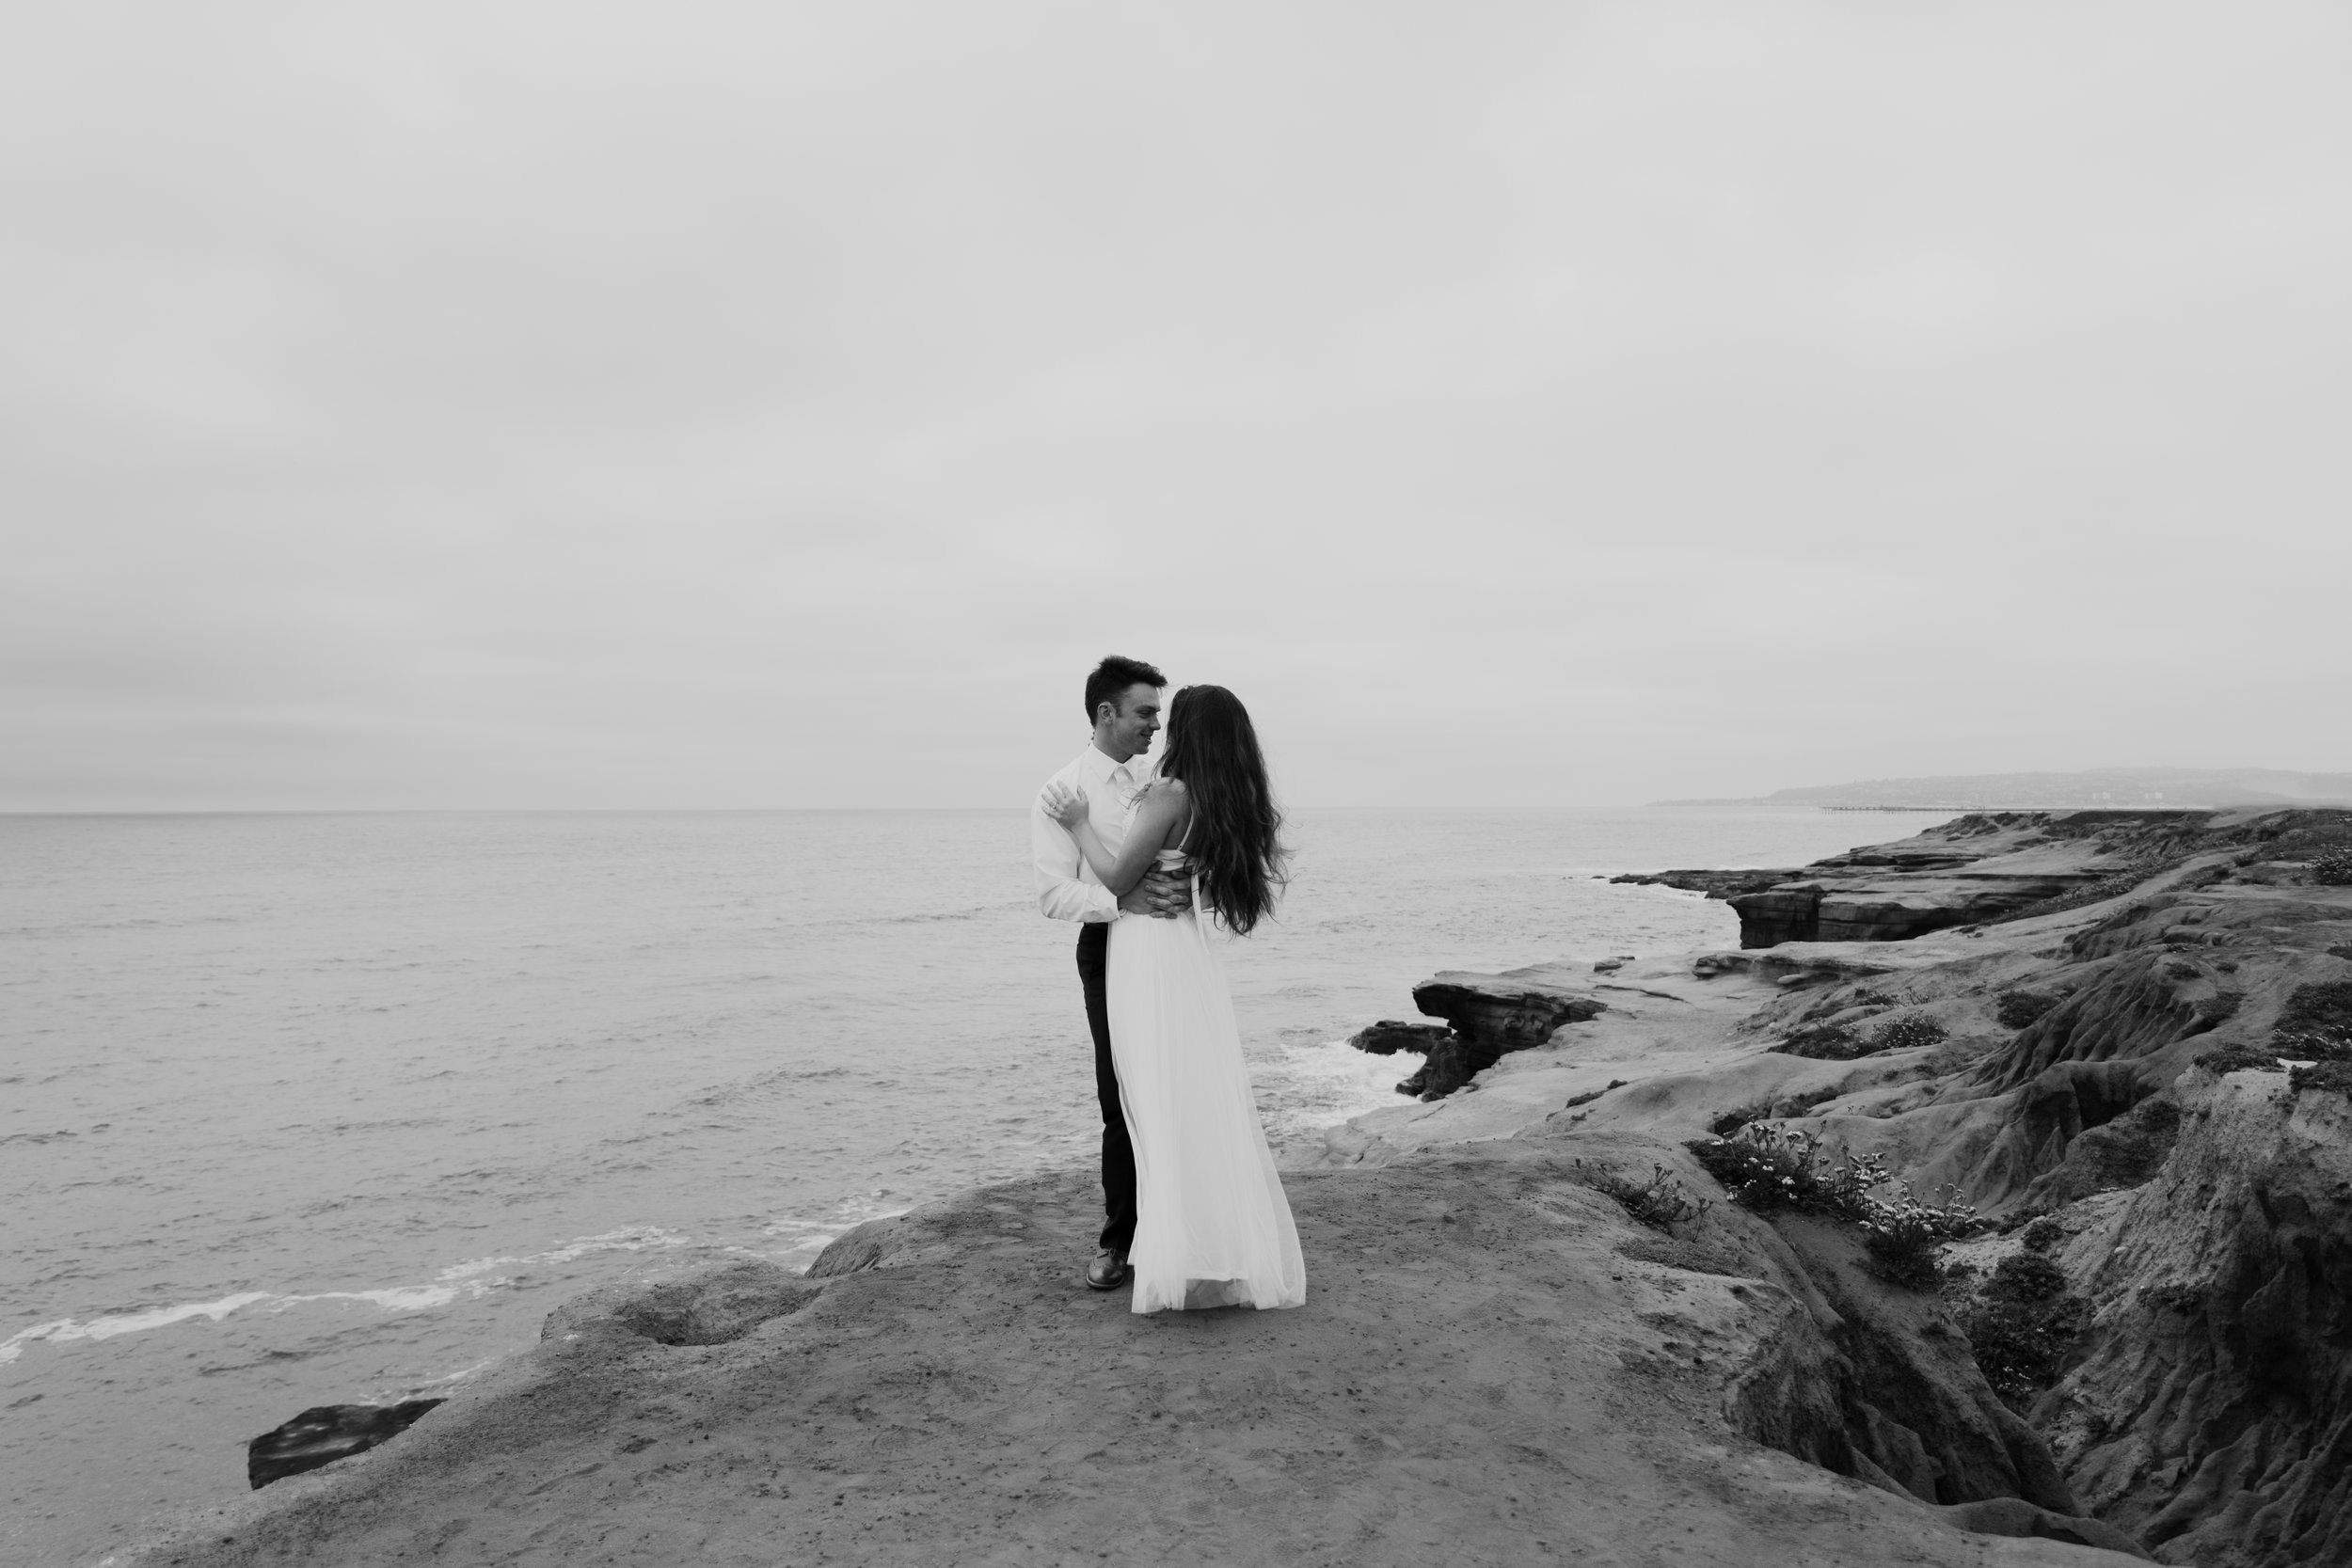 San Diego Wedding Photos by Natalie Michelle Photo Co. - California Wedding Photographer - San Diego Wedding Photography